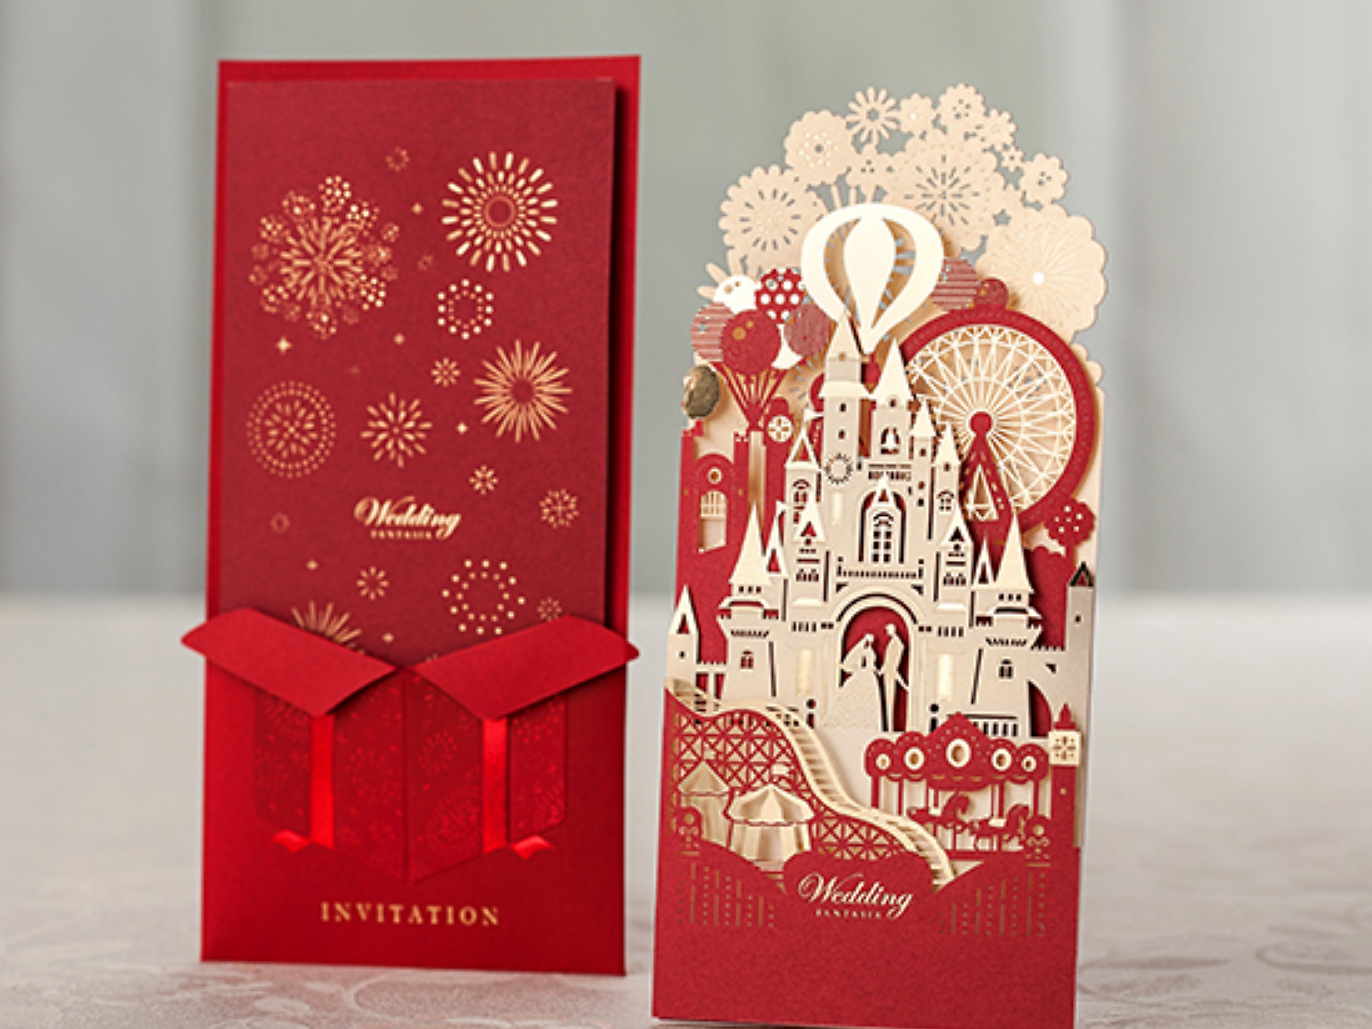 red wedding invitations red laser cut invitations castle laser cut each invitation include 1 x laser cut 1 x inner card 1 x envelope 1 x envelope seal - Red Wedding Invitations